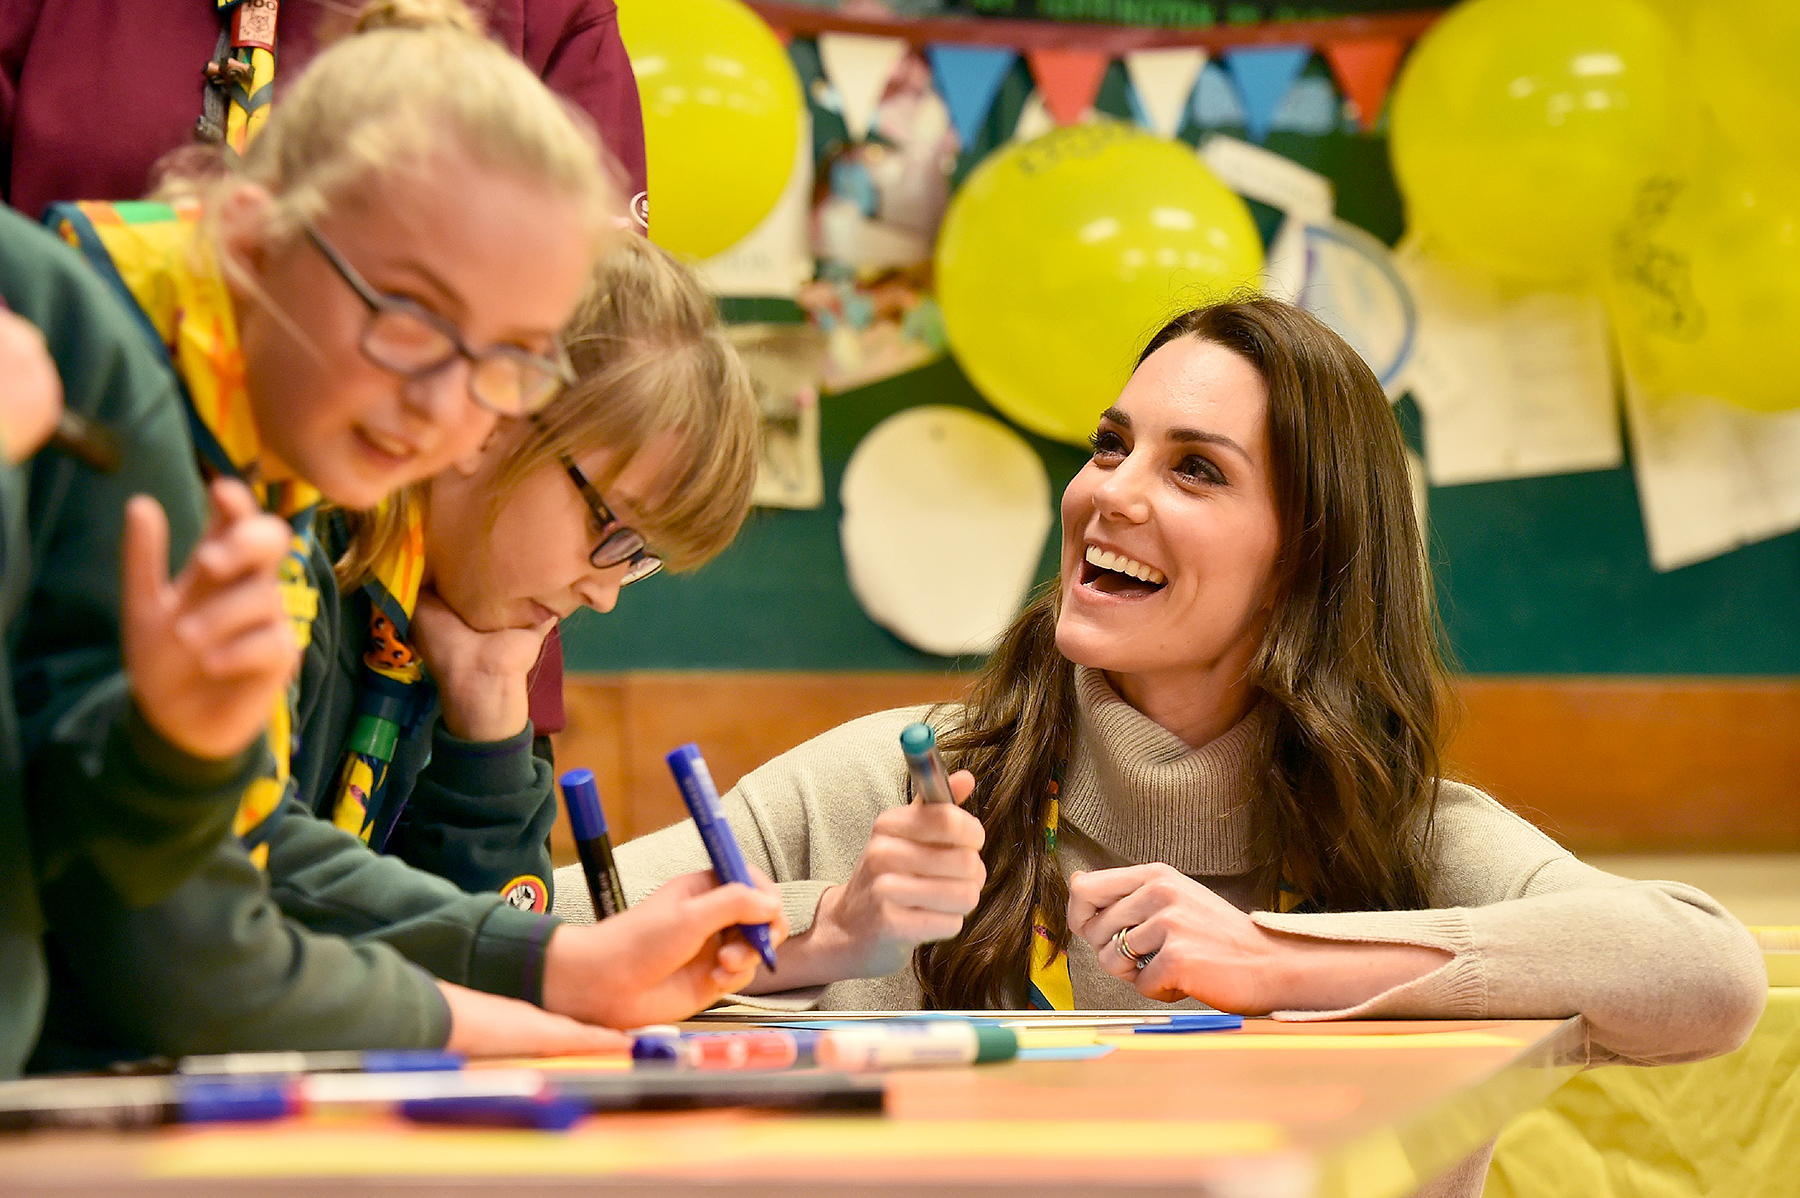 Britain's Catherine, Duchess of Cambridge, reacts as she talks with cubs during a Cub Scout Pack meeting with cubs from the Kings Lynn District, in Kings Lynn, eastern England, on December 14, 2016, to celebrate 100 years of Cubs. The Duchess attended a special Cub Scout Pack meeting with Cubs from the Kings Lynn District to celebrate 100 years of Cubs. Cub Scouting was co-founded by Robert Baden-Powell and Vera Barclay on the 16th December 1916.